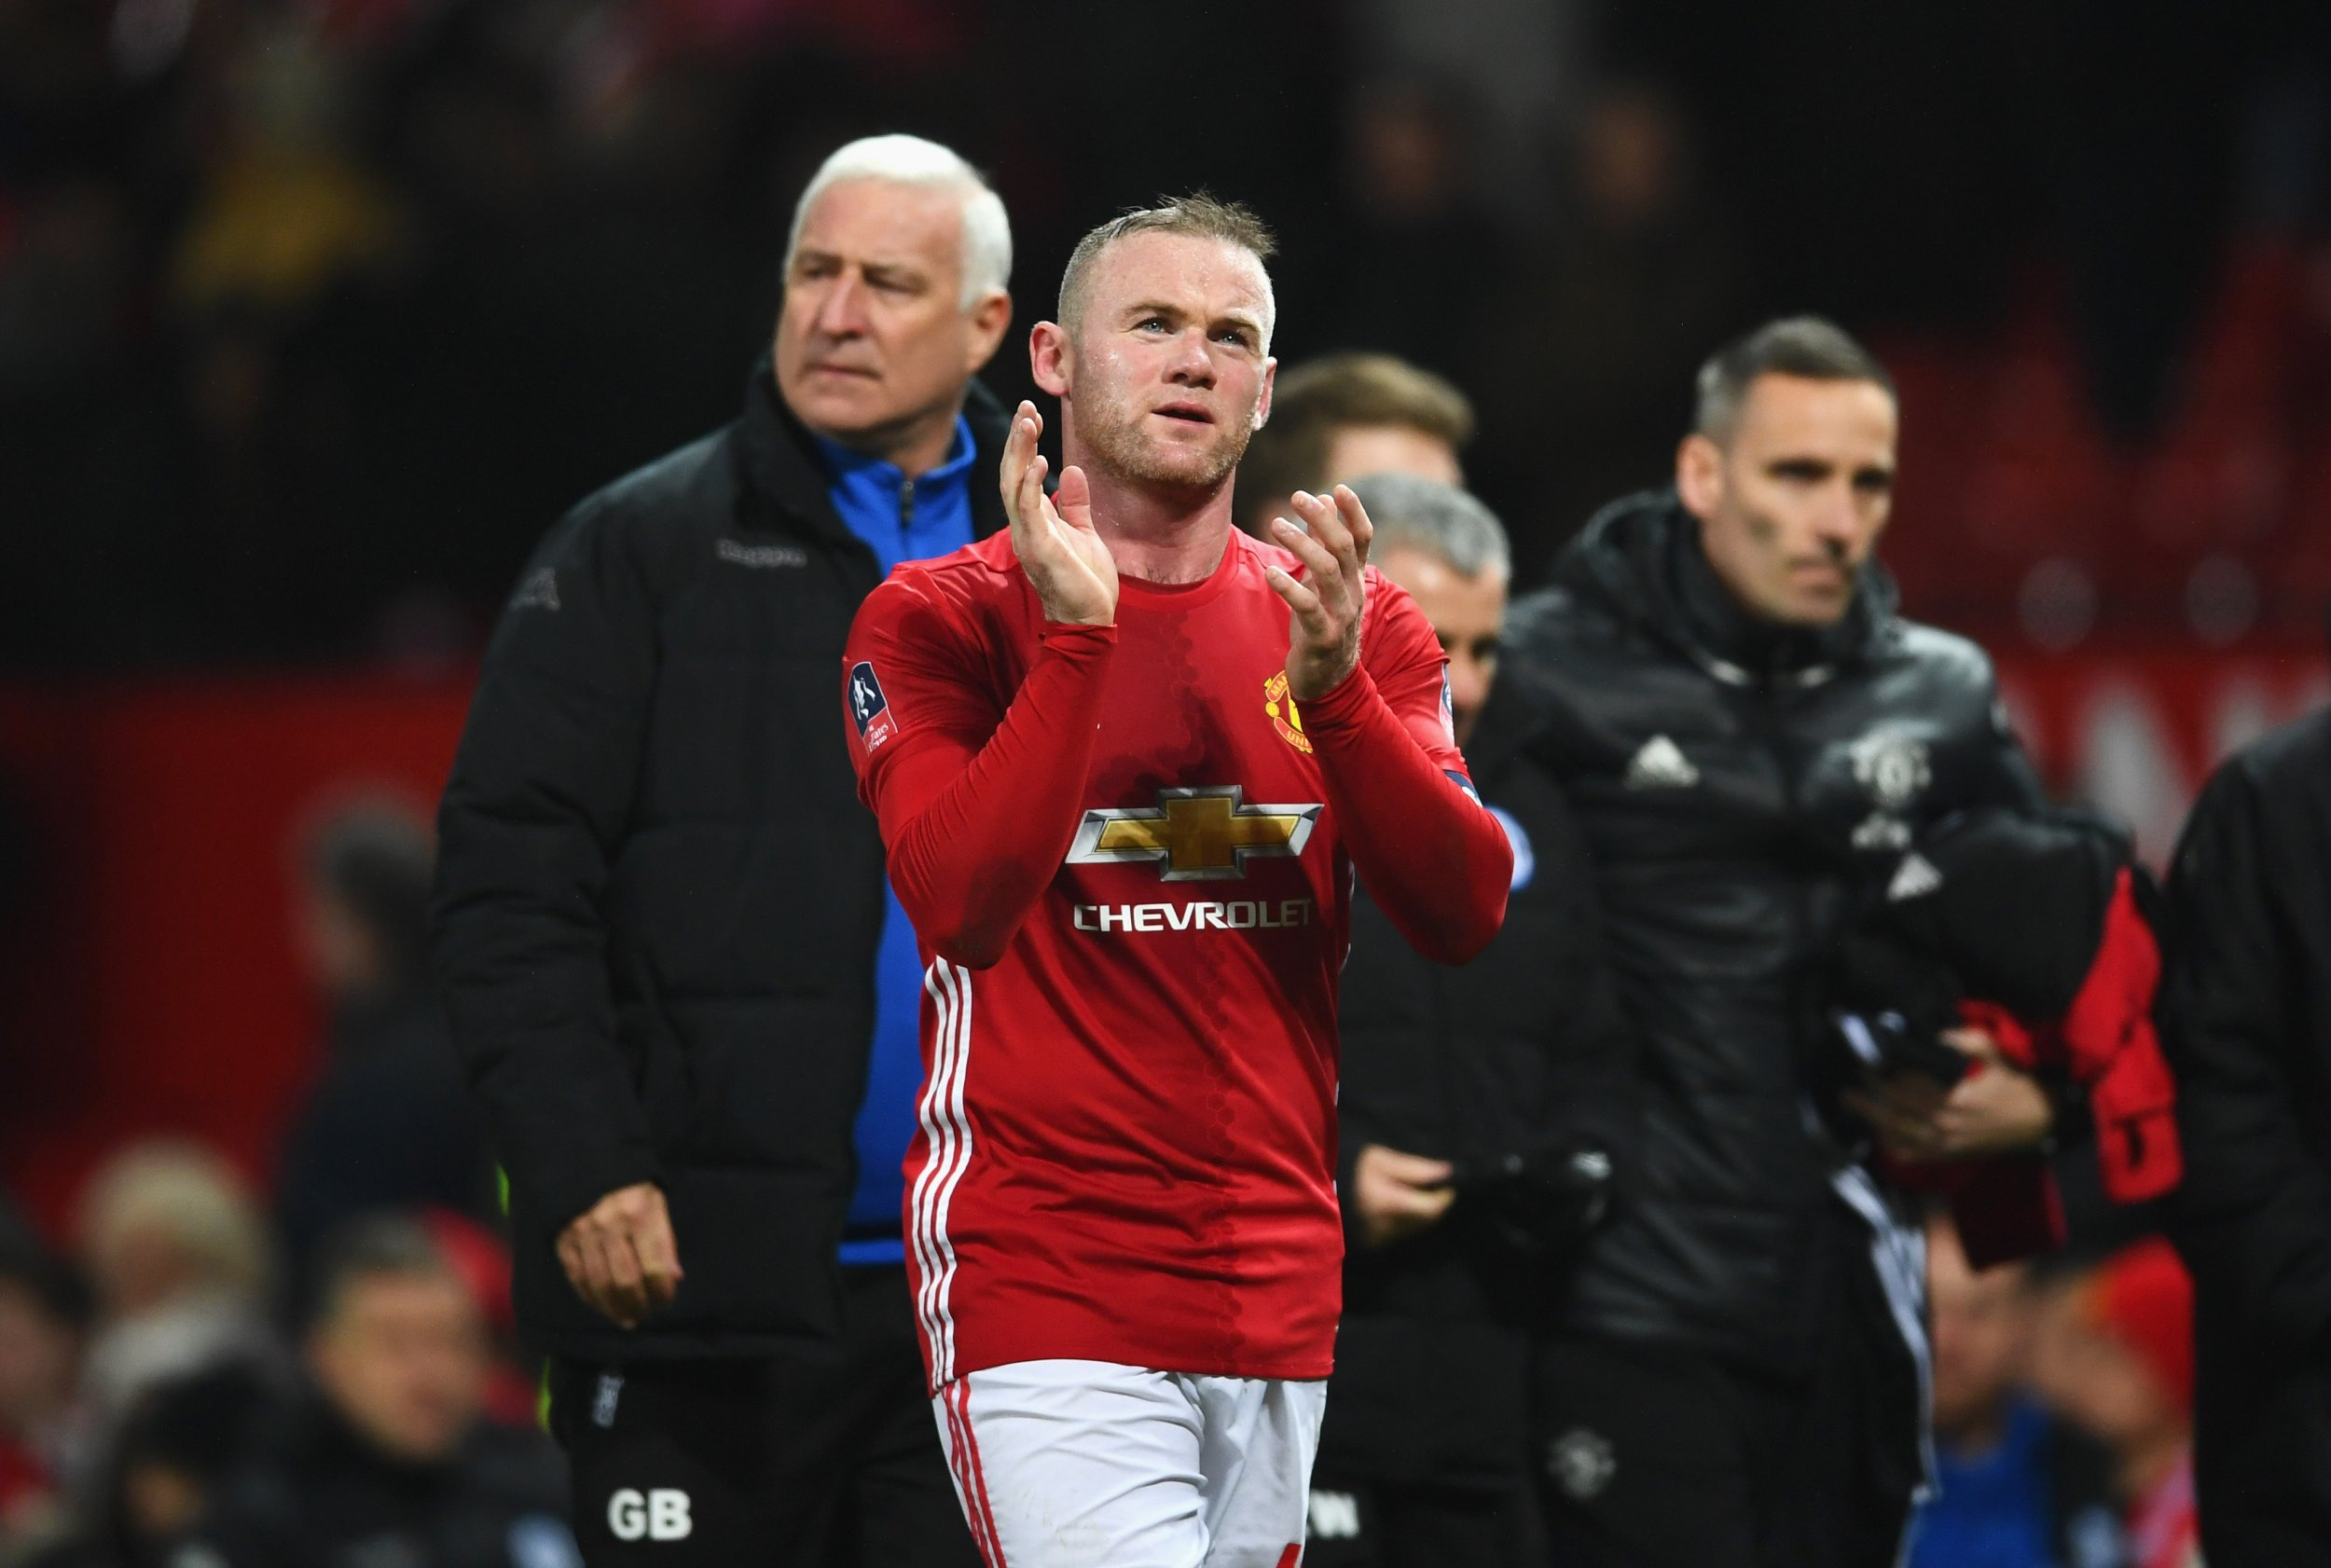 Manchester United striker Wayne Rooney, center.